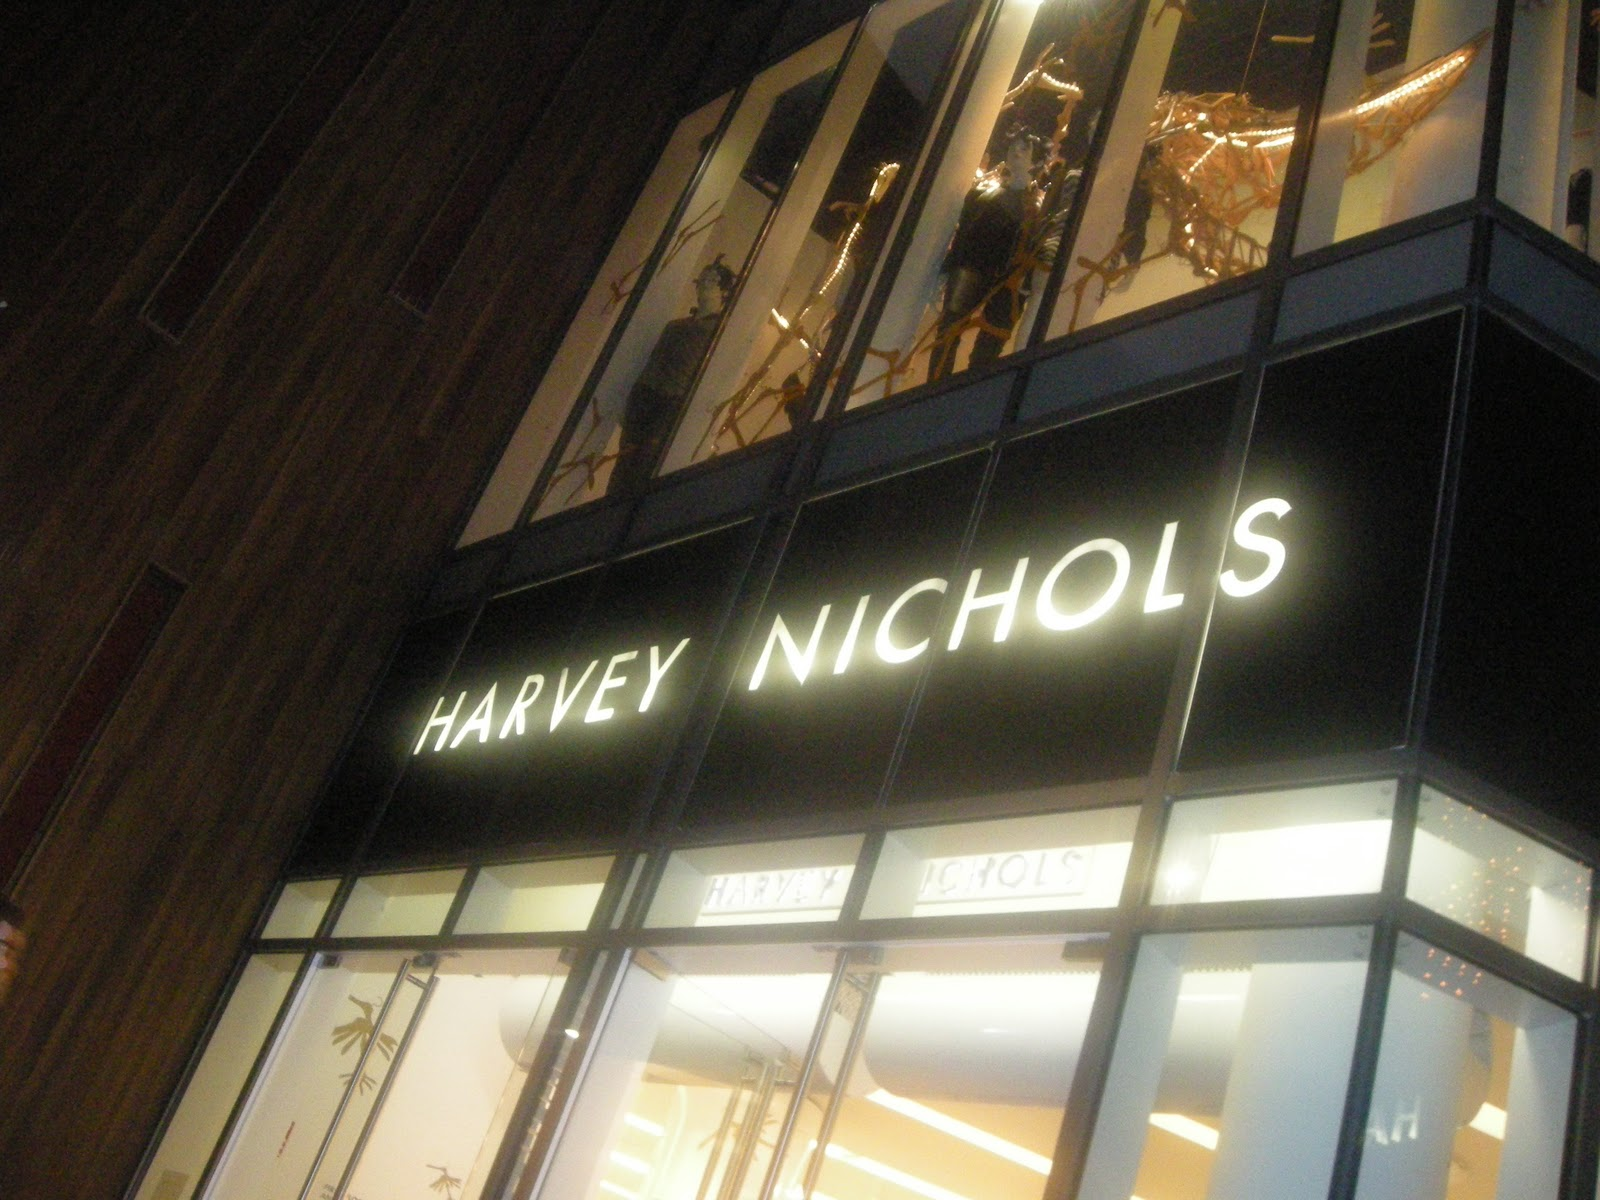 harvey nicks 008.jpg